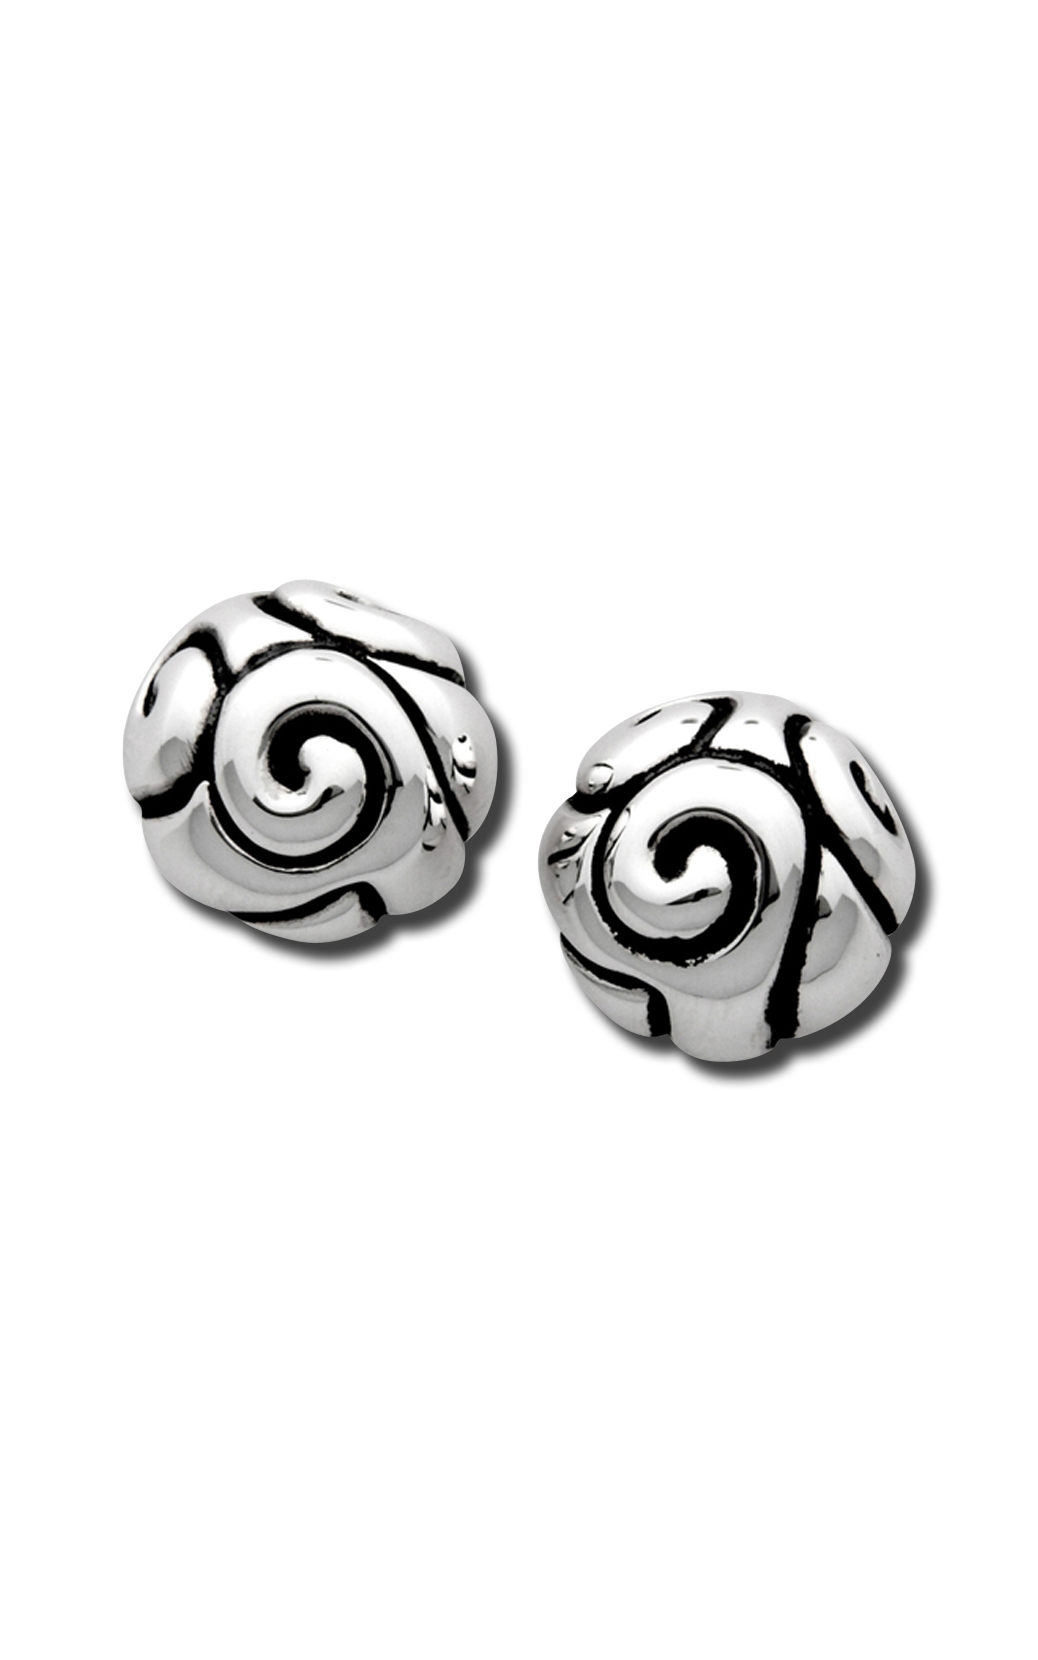 Zina Swirl Earrings B1220 product image